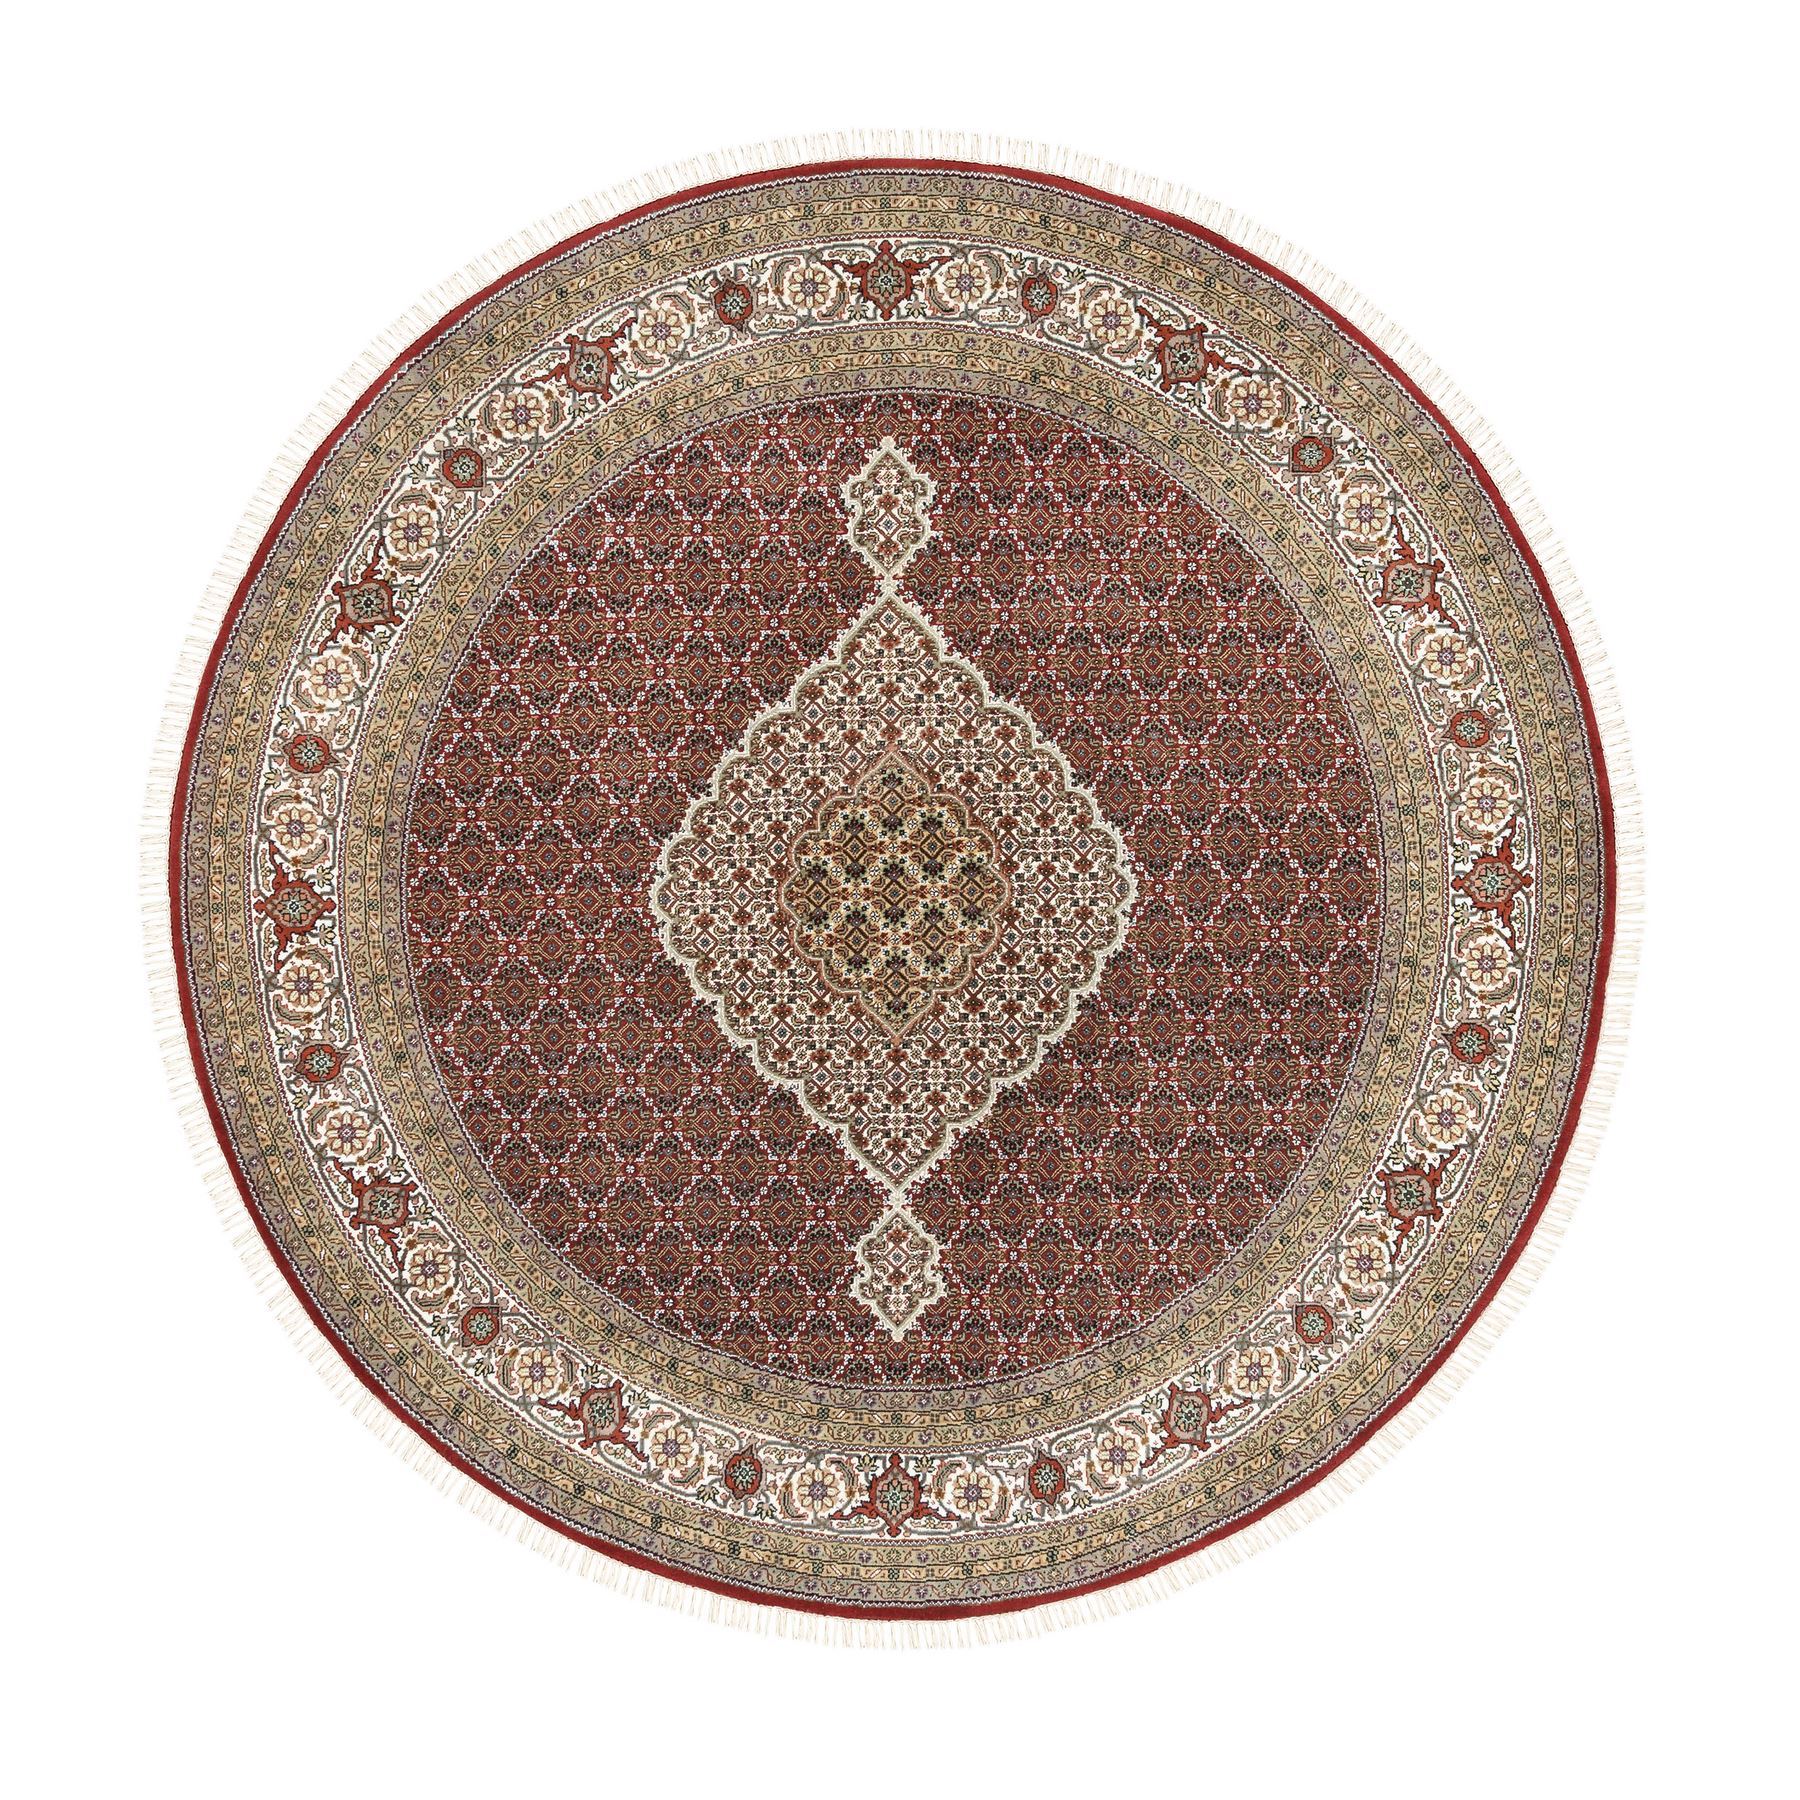 "8'4""x8'4"" Round Hand Woven Red Fish Medallion Design Tabriz Mahi Wool And Silk Oriental Rug"